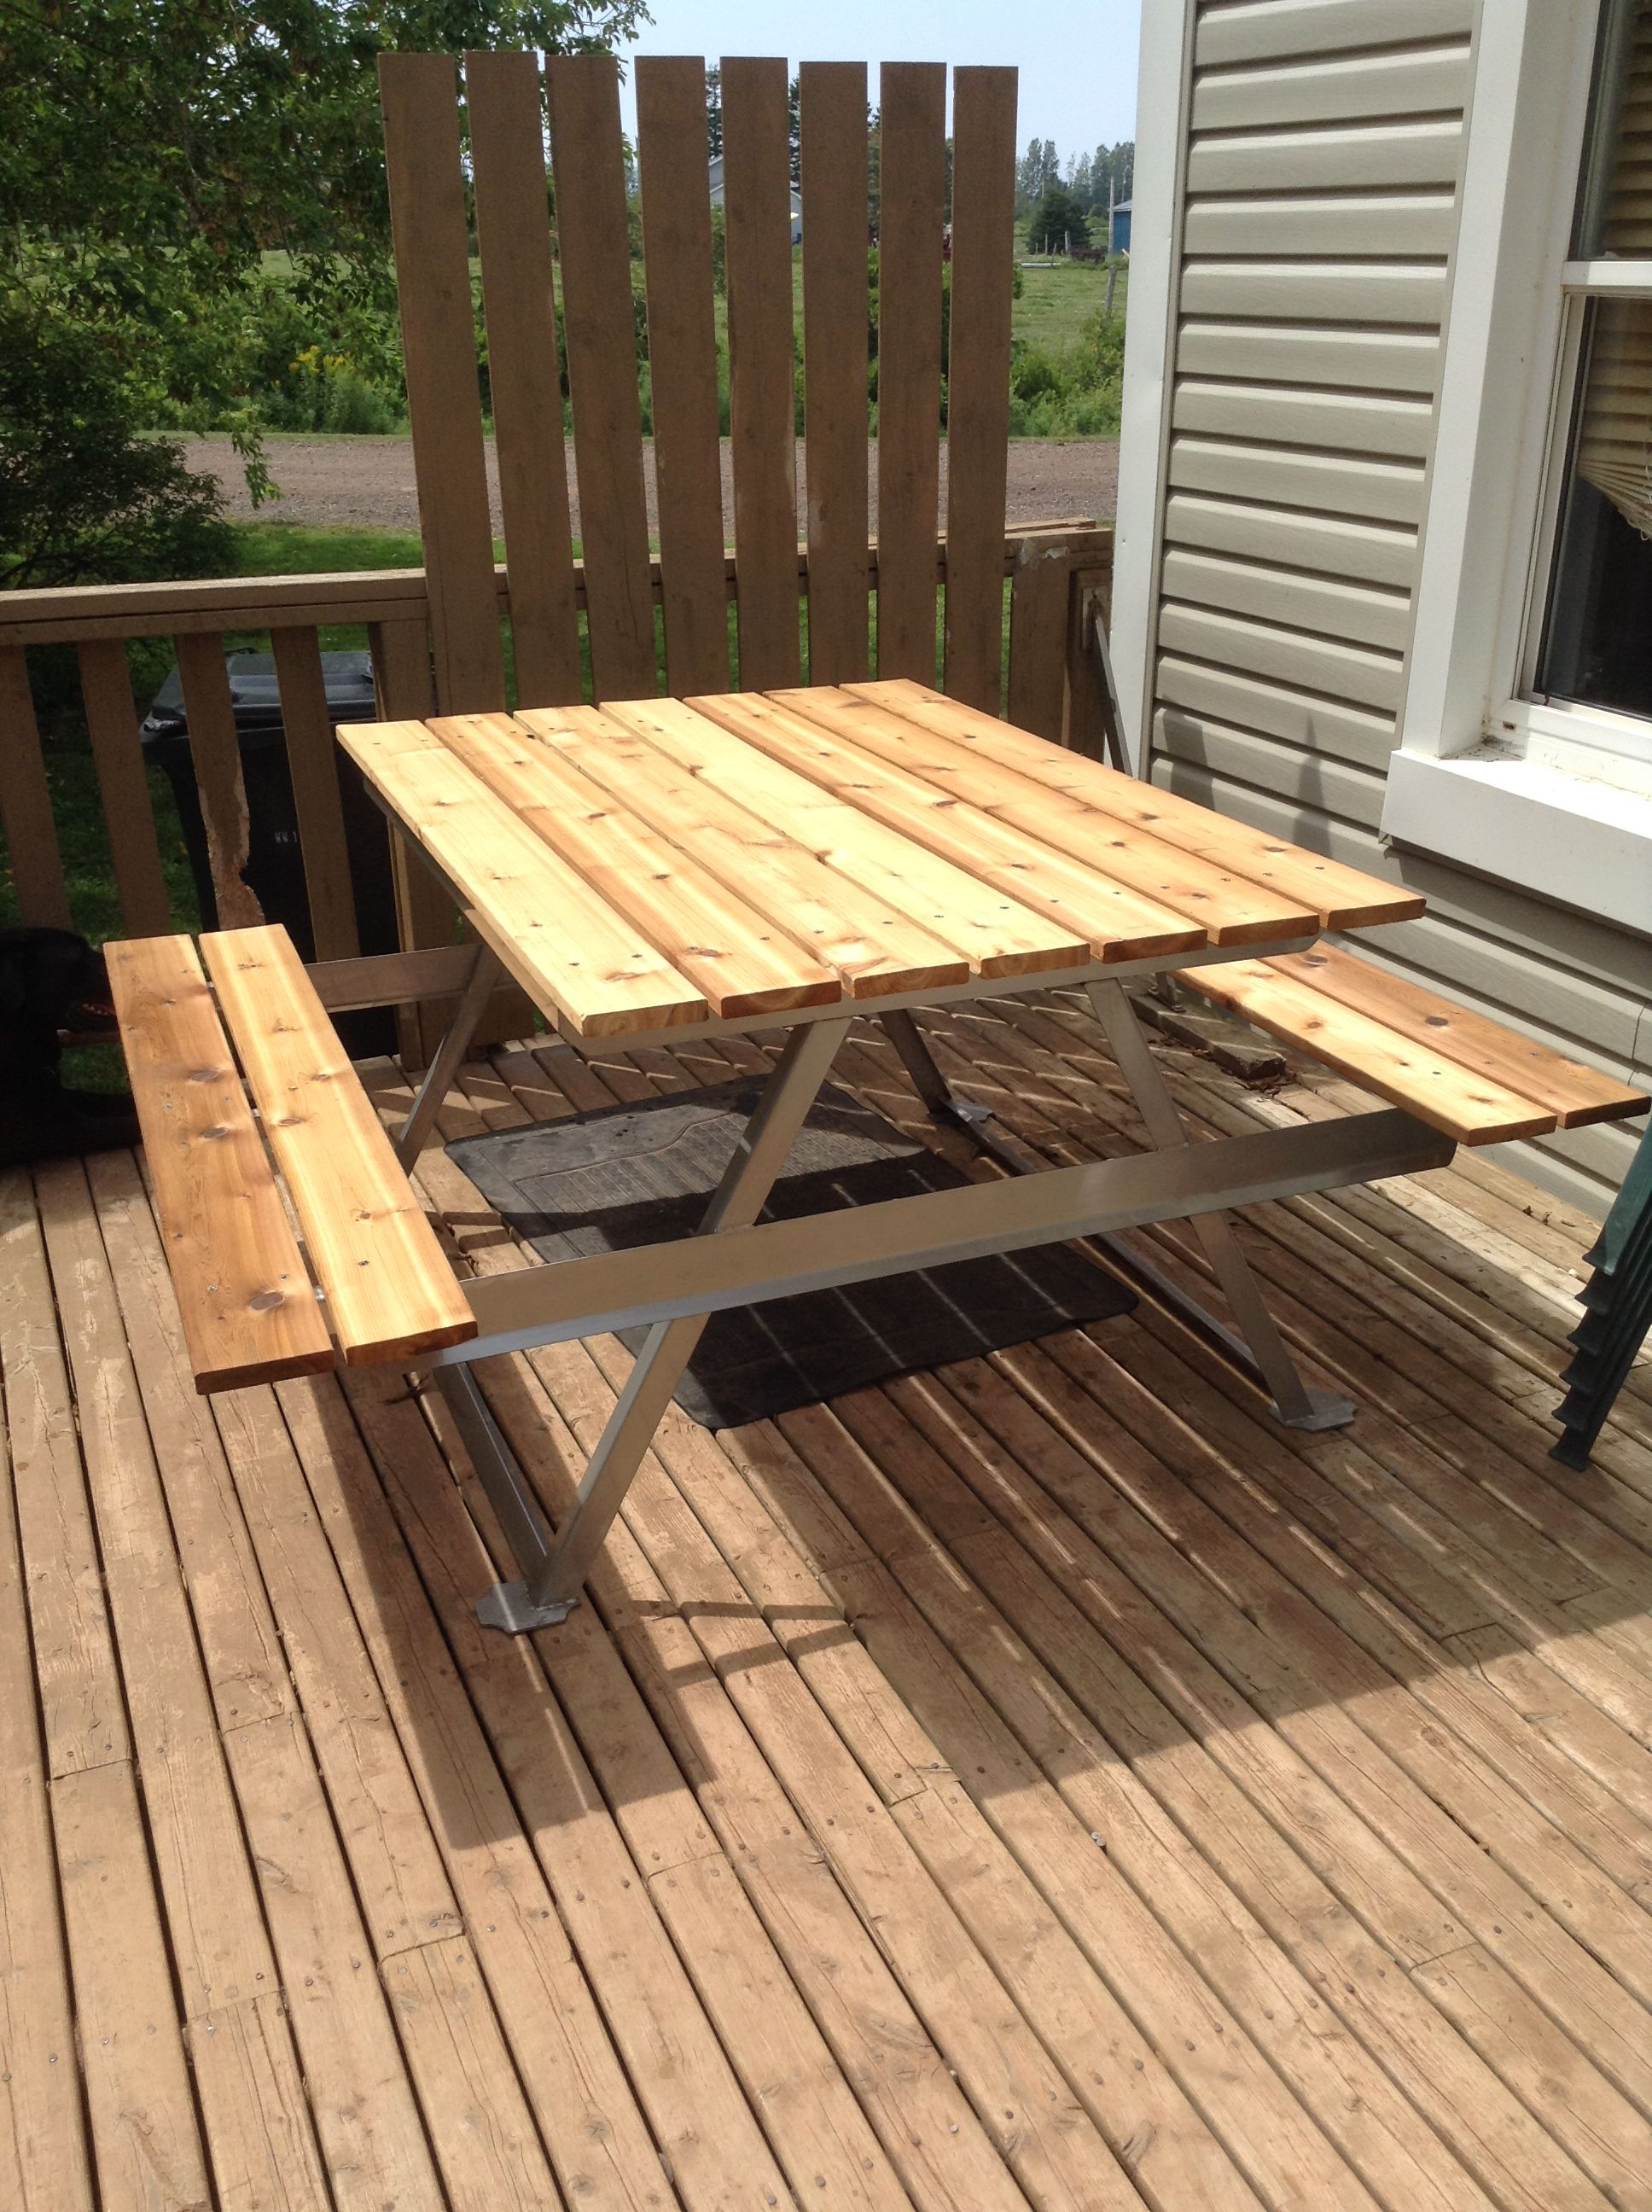 Picnic Table Made From Stainless Steel And Red Cedar Not Your - Stainless steel picnic table